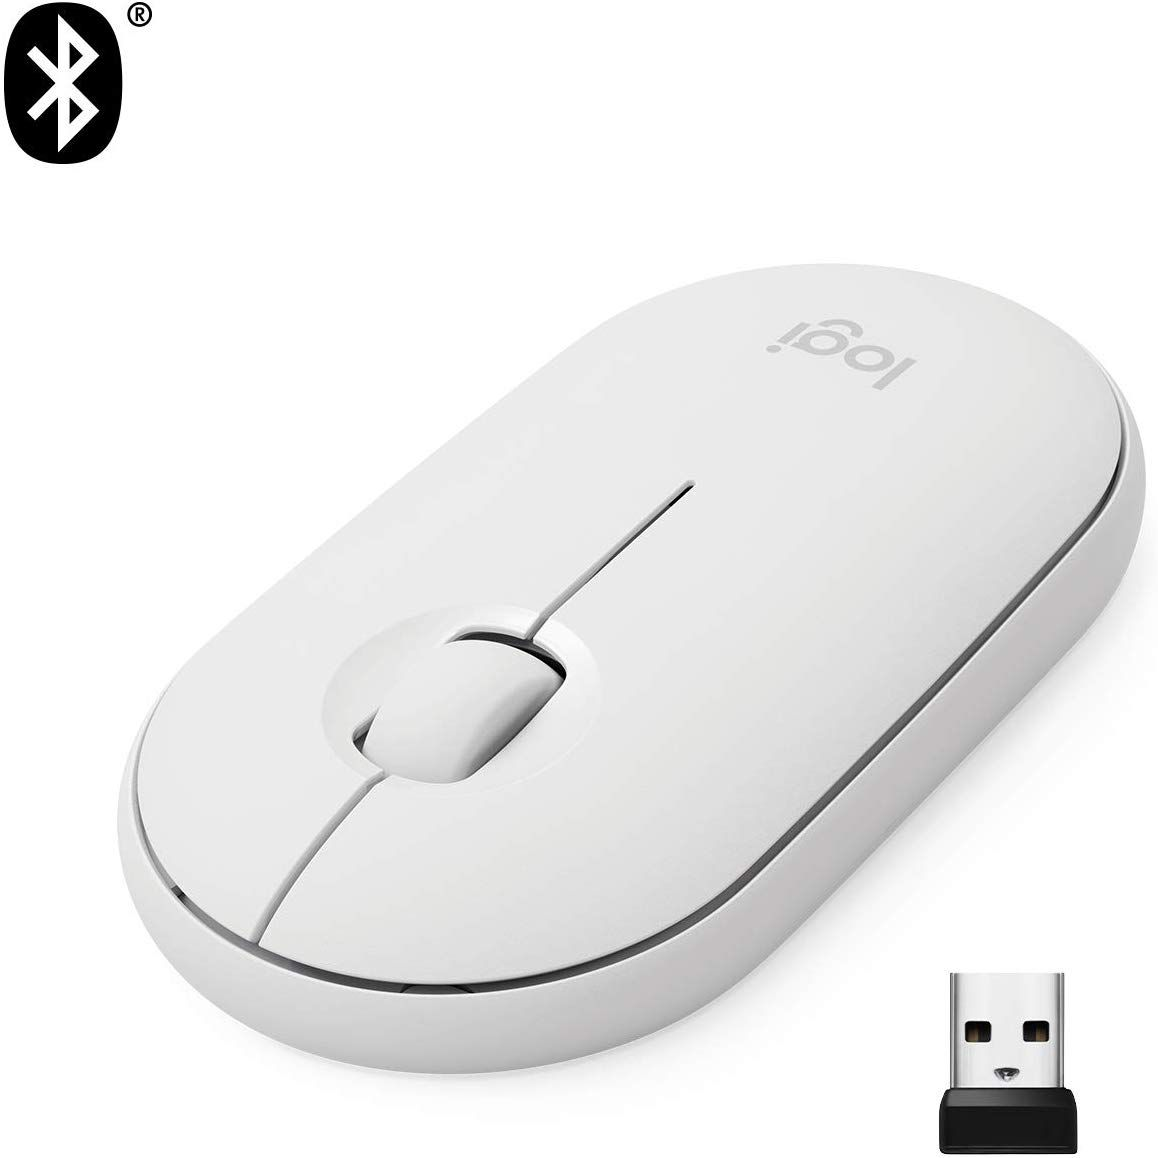 Mouse Logitech Pebble M350 Branco